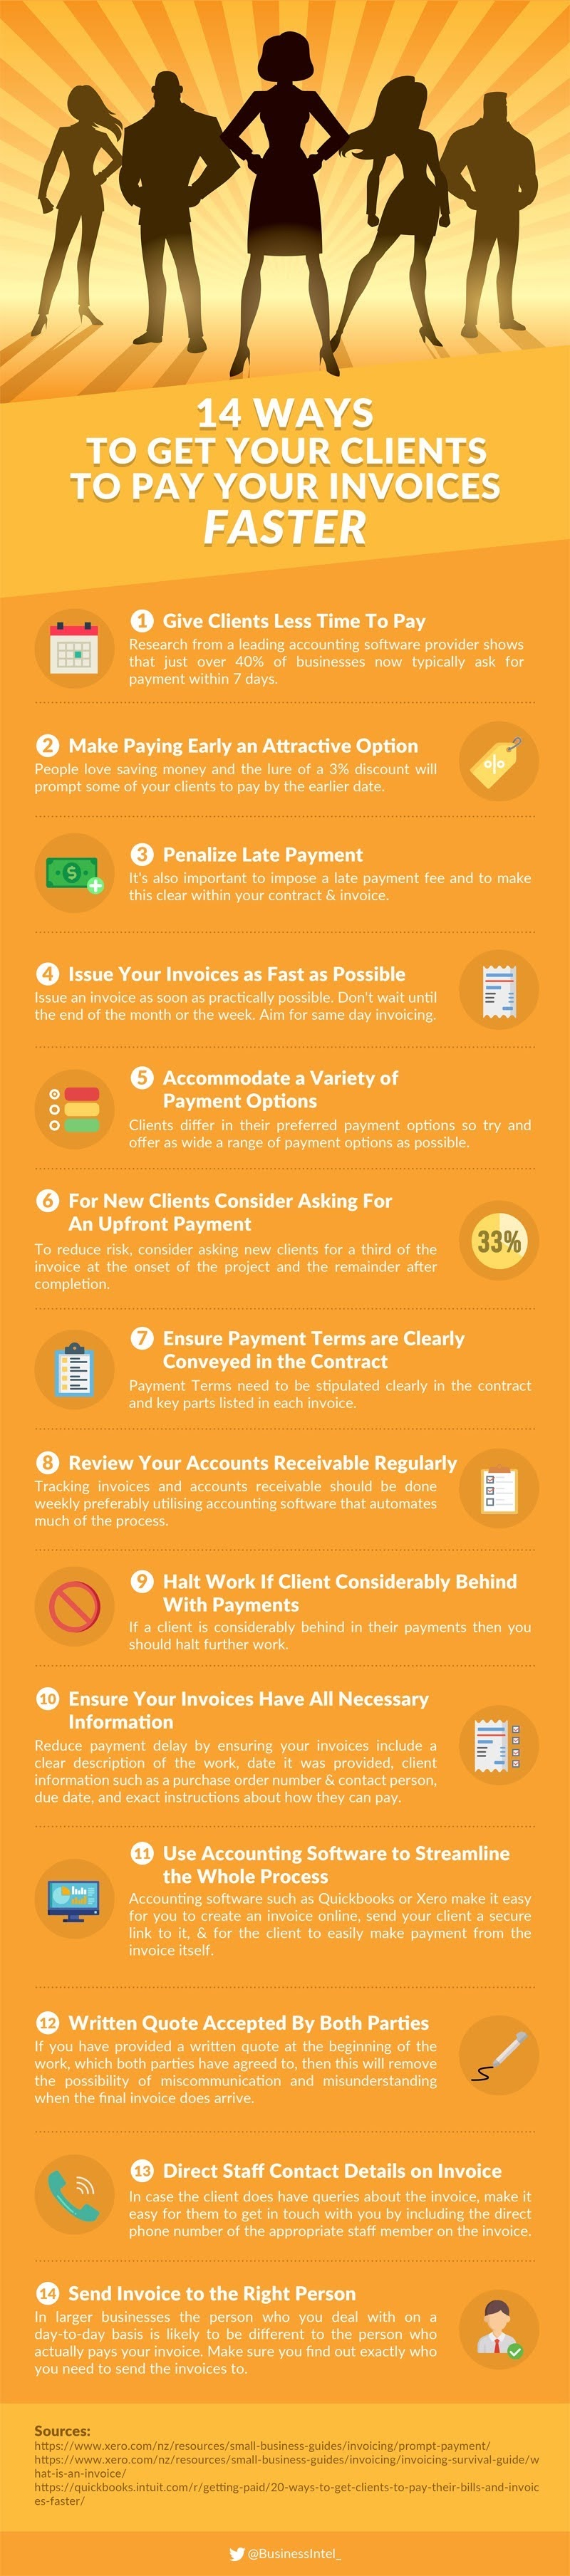 14 Ways To Get Your Clients to Pay Your Invoices Faster #infographic